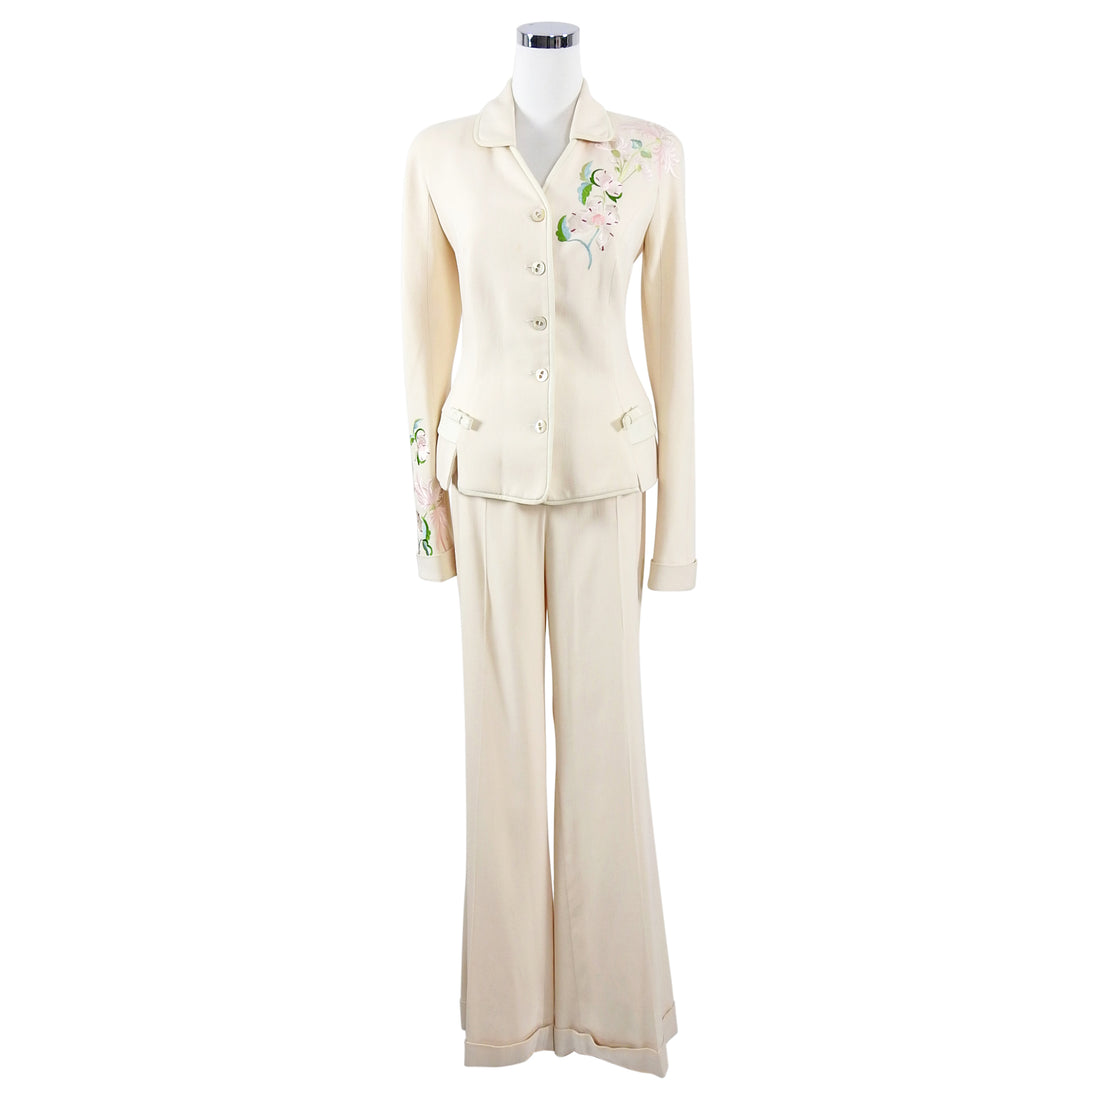 Christian Dior Vintage SS2005 Ivory Floral Embroidered Pant Suit Jacket - FR40 / 8